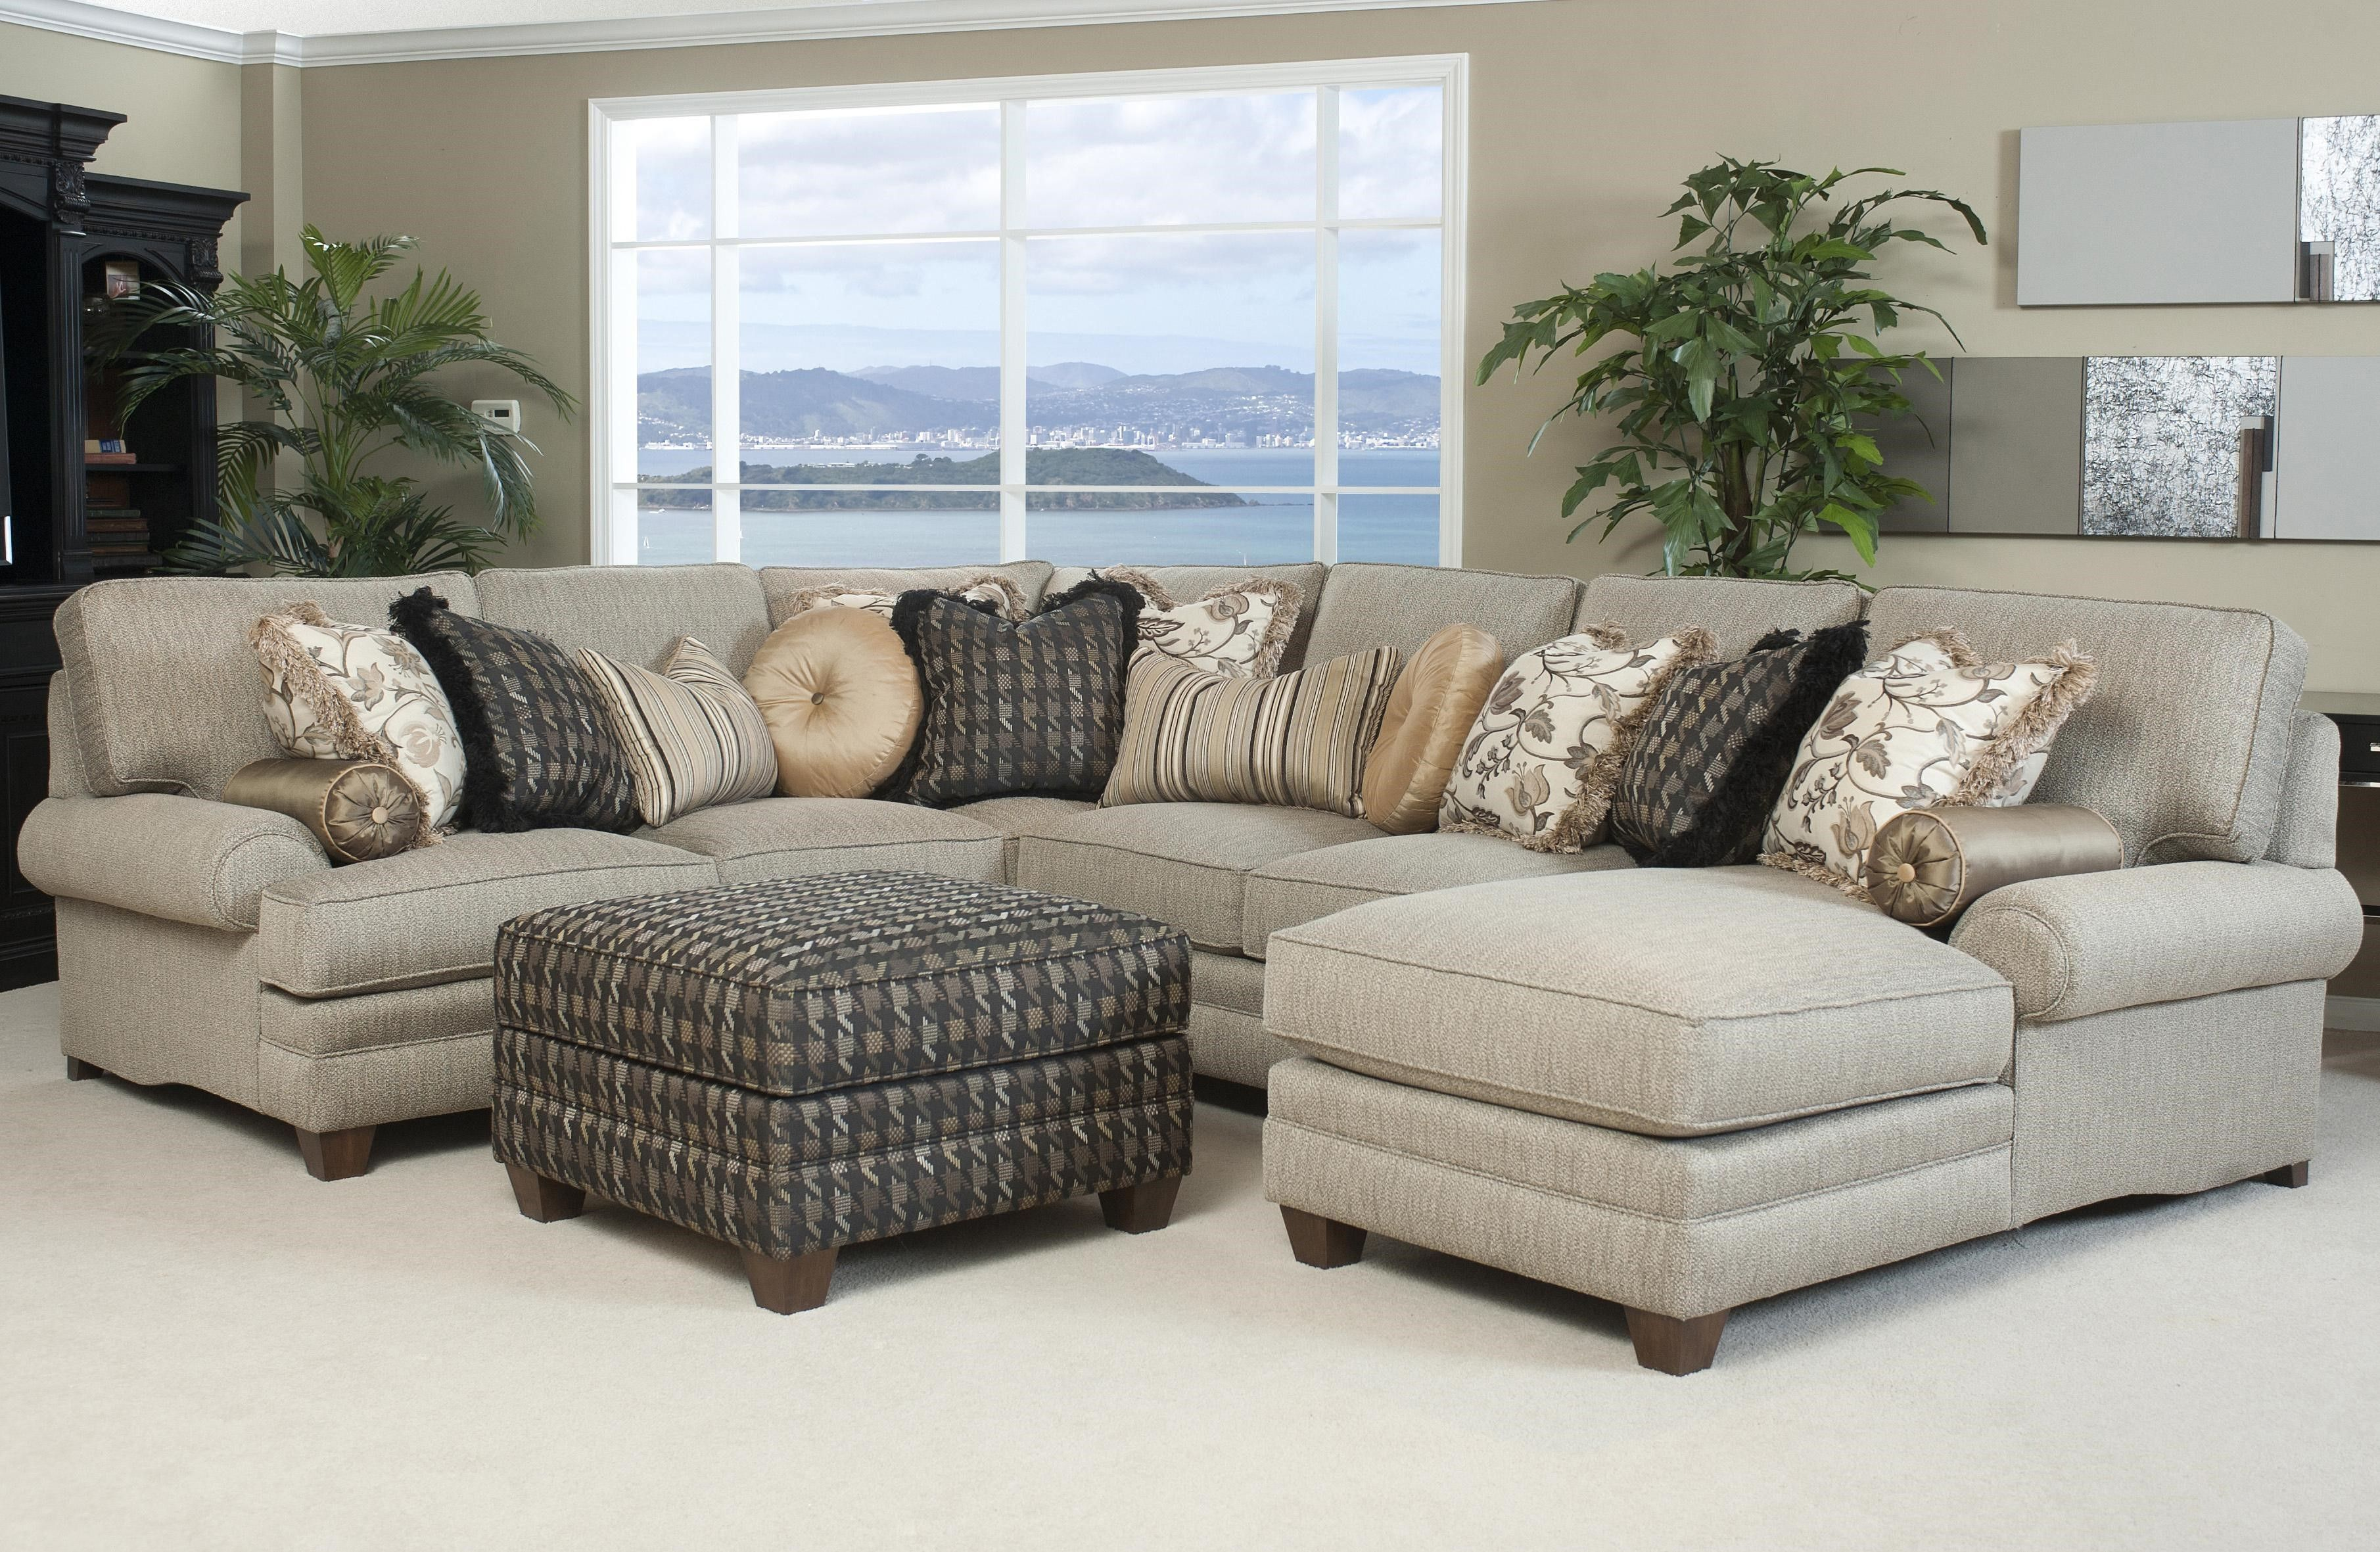 Most Comfortable Leather Sectional Sofa With Images Sectional